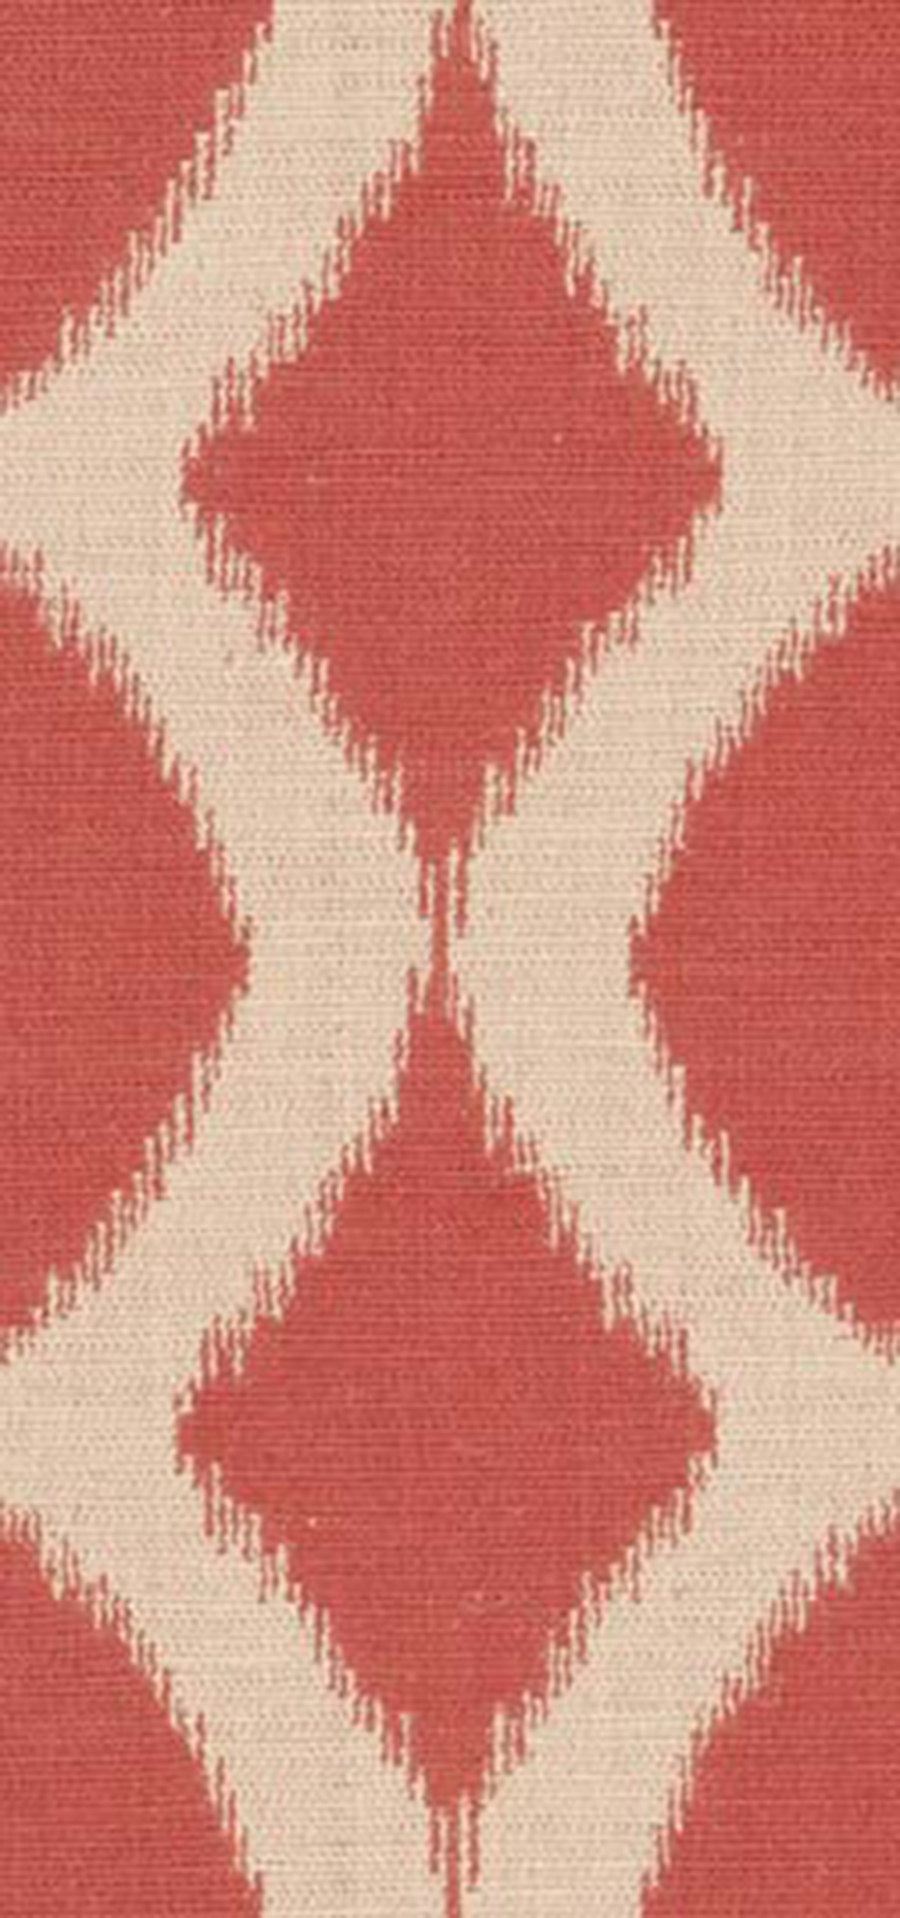 03718 coral reef fabric trend